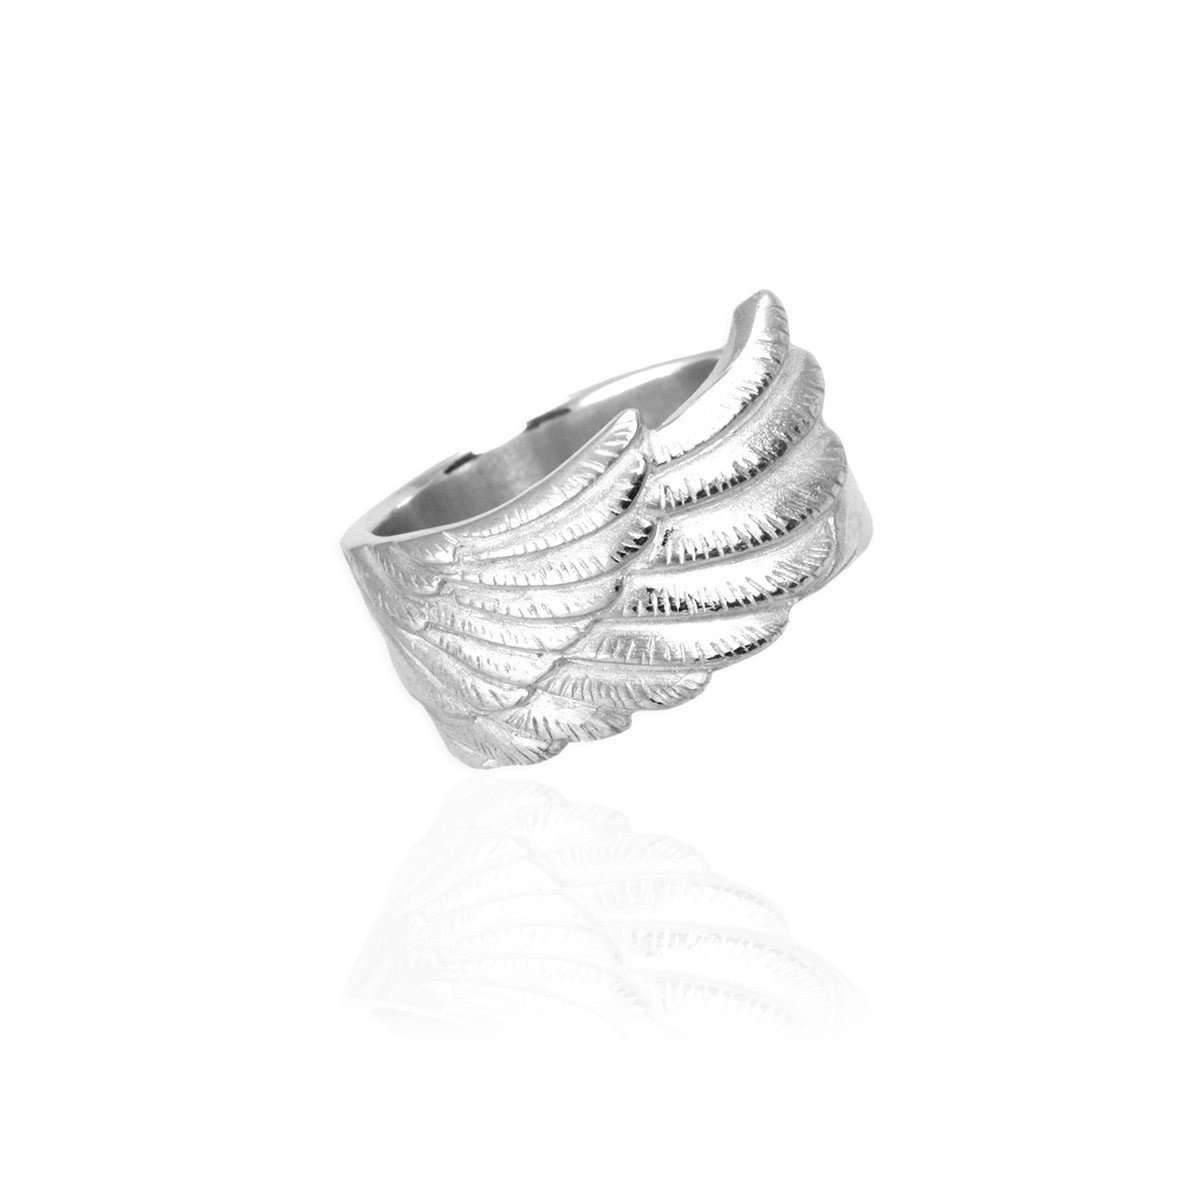 Jana Reinhardt Gold Plated Silver Coiled Snake Ring - UK I - US 4 1/4 - EU 47 3/4